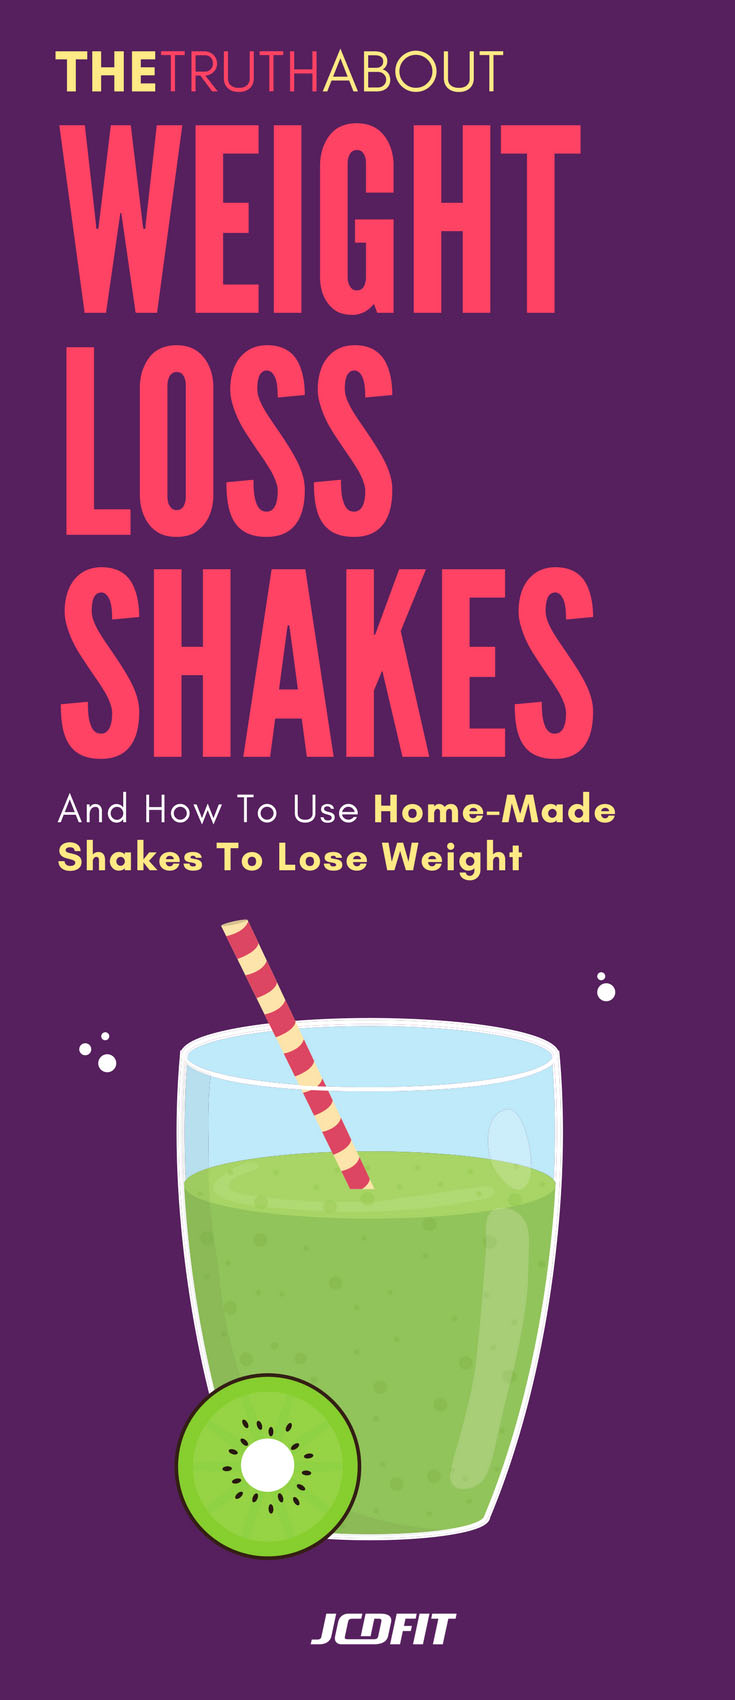 Are Weight Loss Shakes The Key To Lasting Weight Loss?